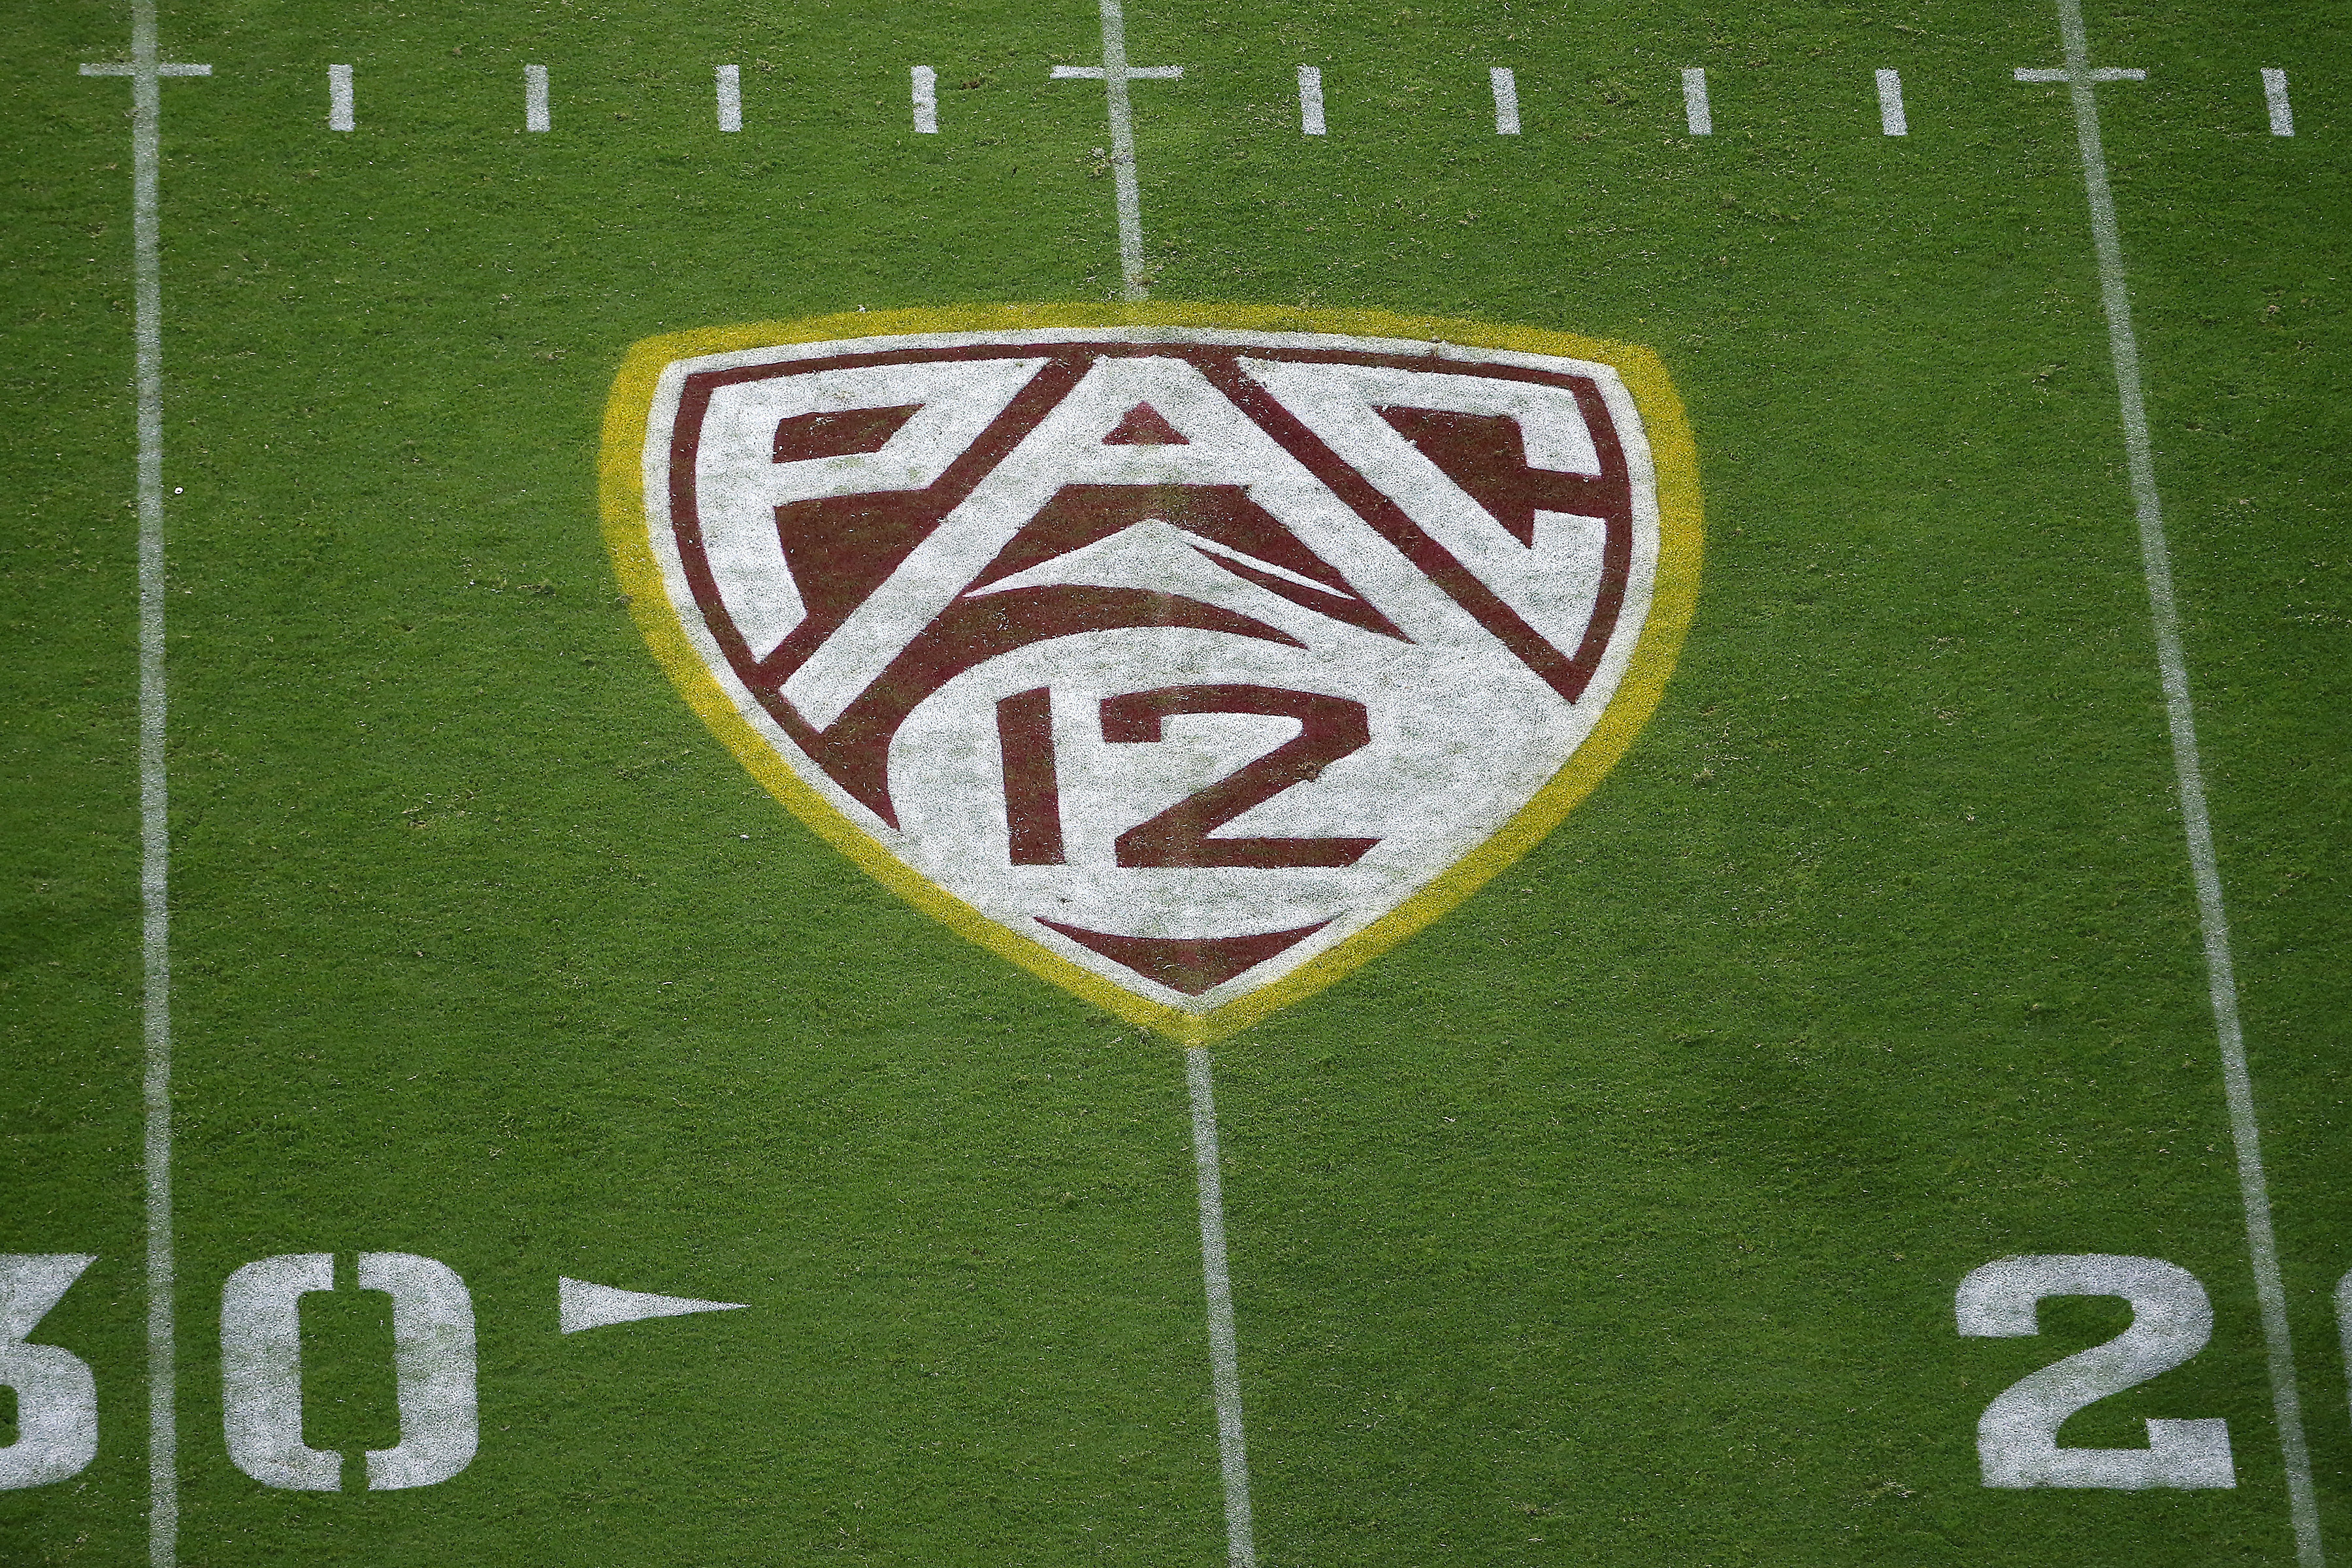 Pac-12: Voluntary workouts can resume on campus on June 15